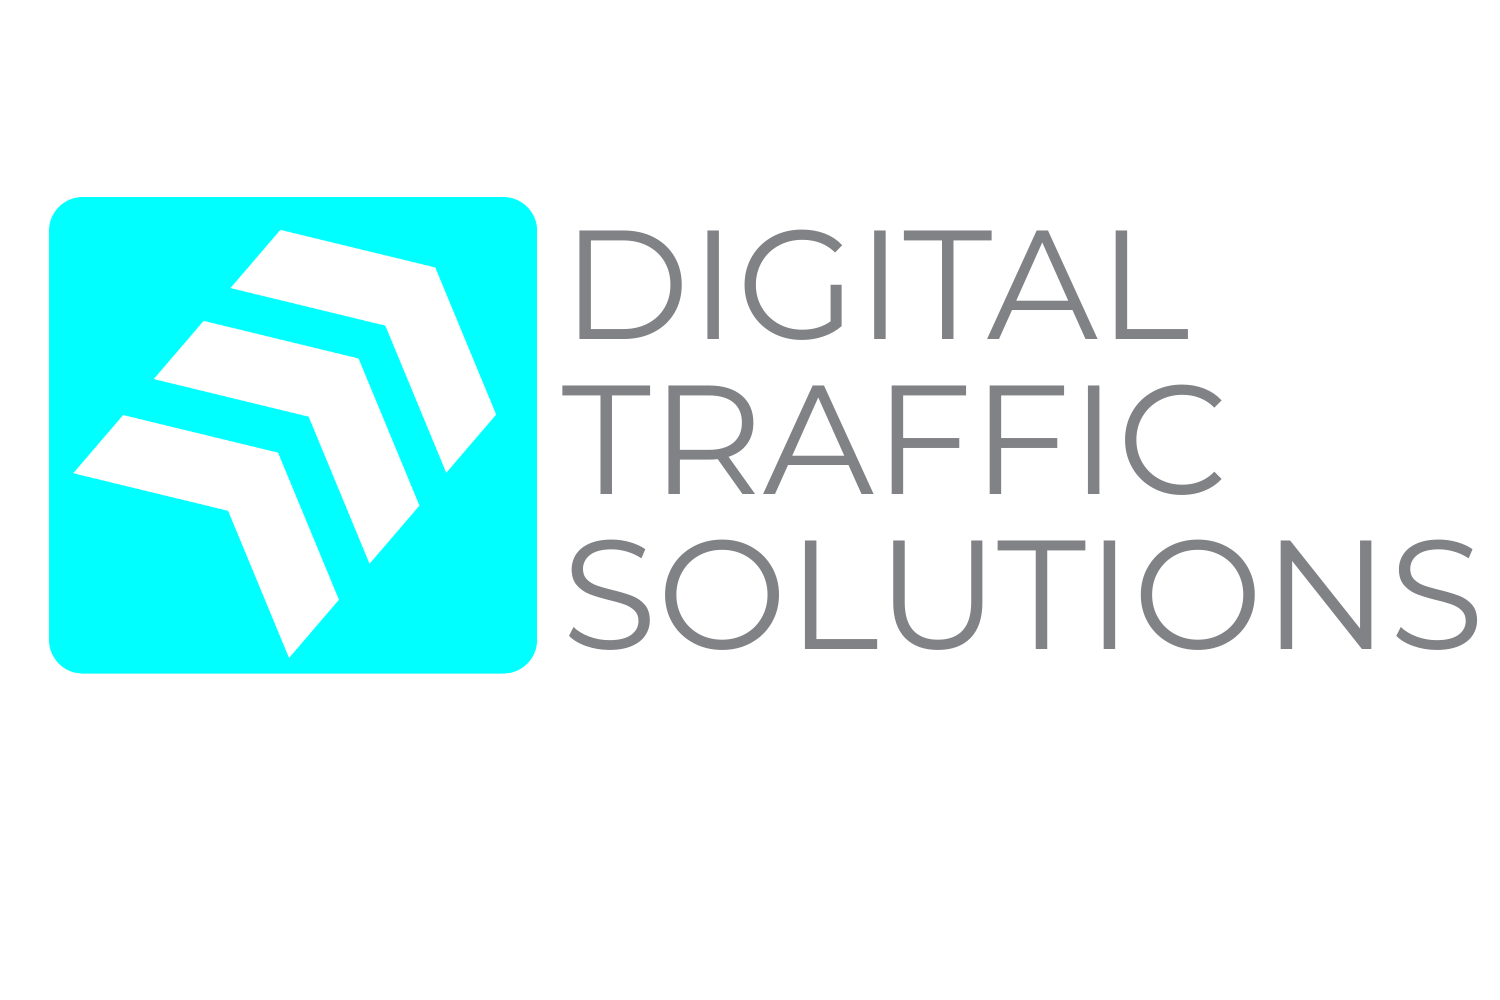 Web design, Digital marketing & Search Engine Optimization (SEO) - Digital Traffic Solutions, LLC